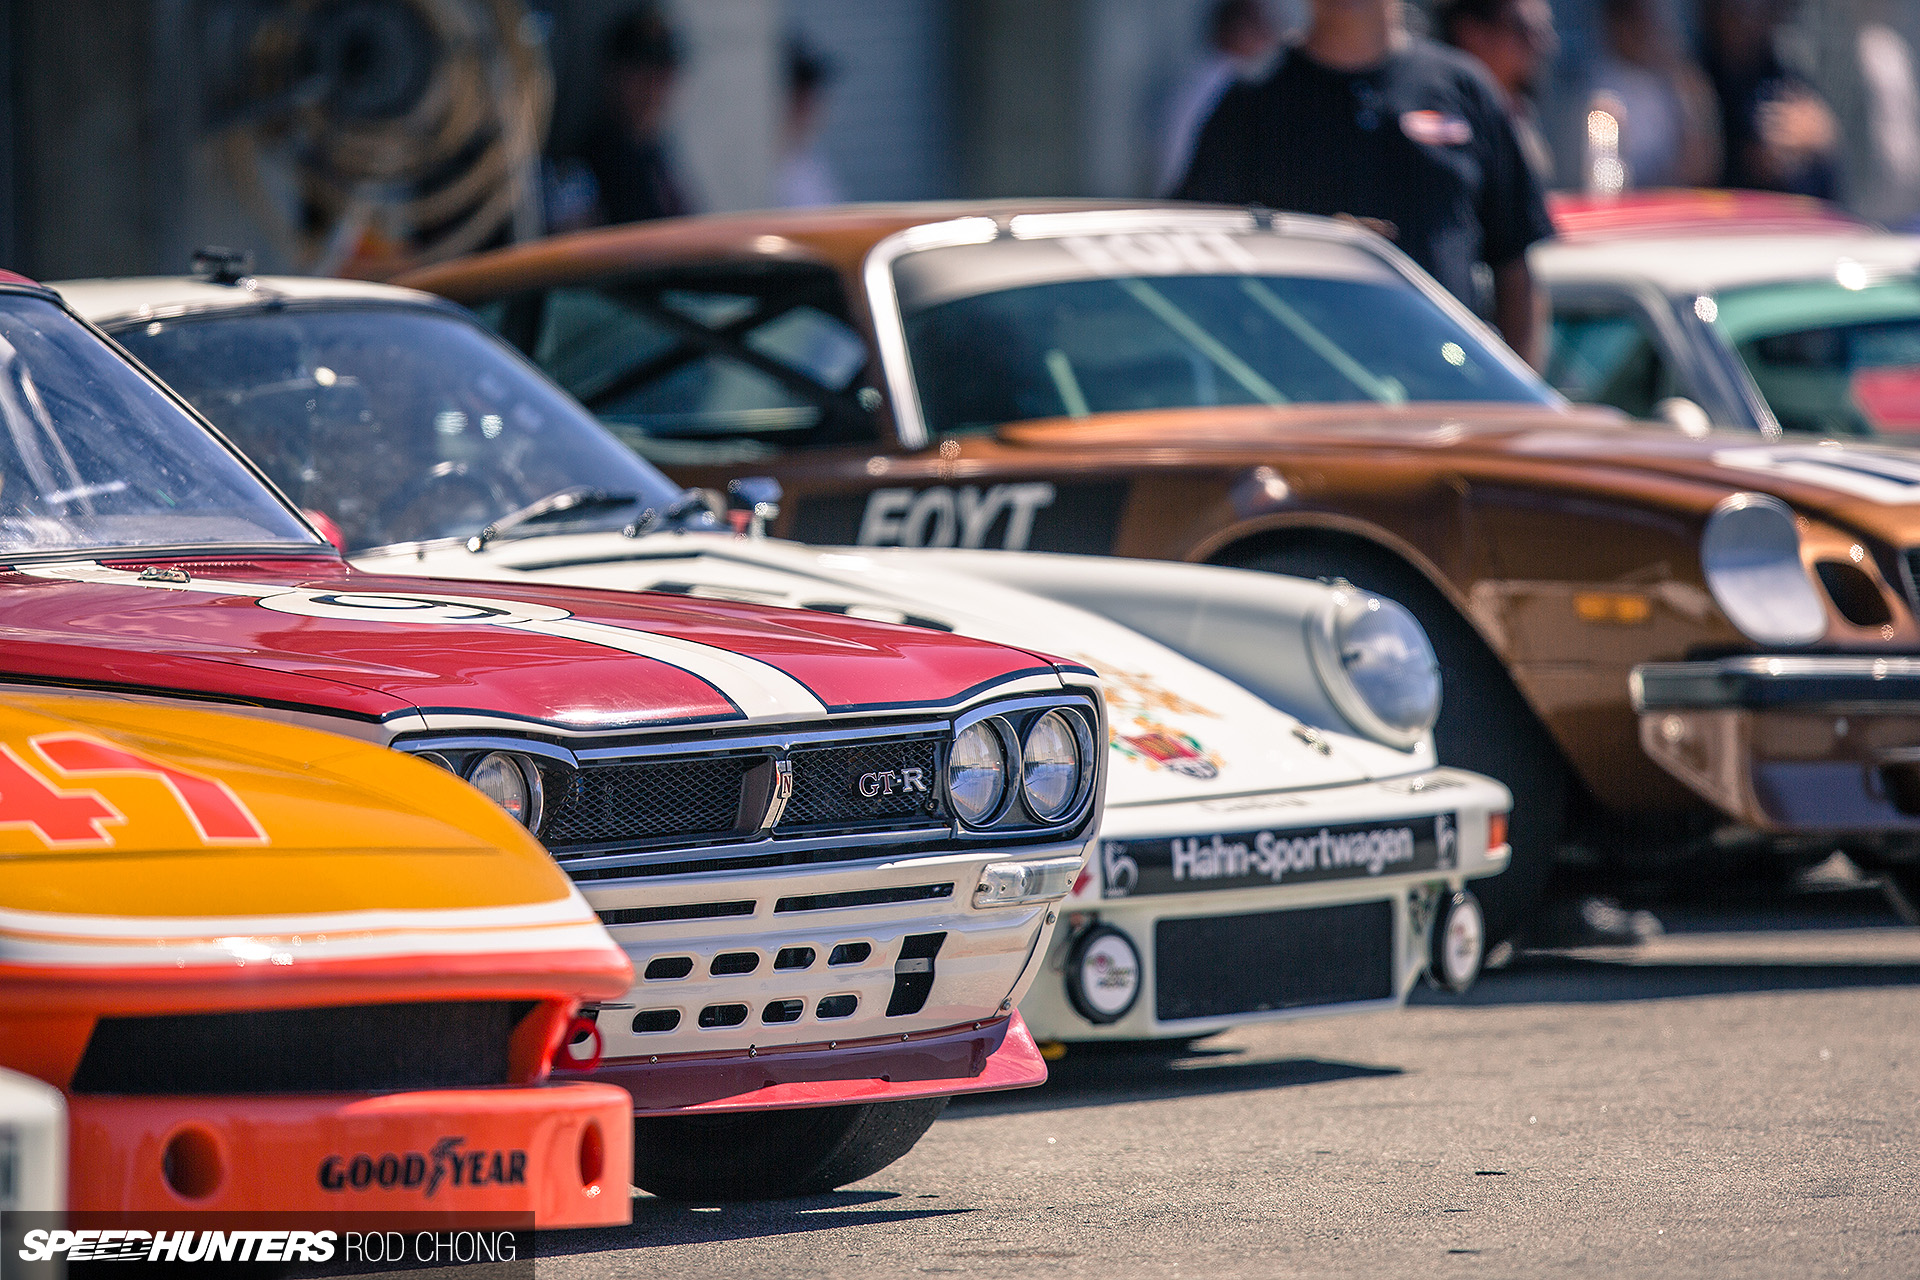 How To Run A Reunion - Speedhunters